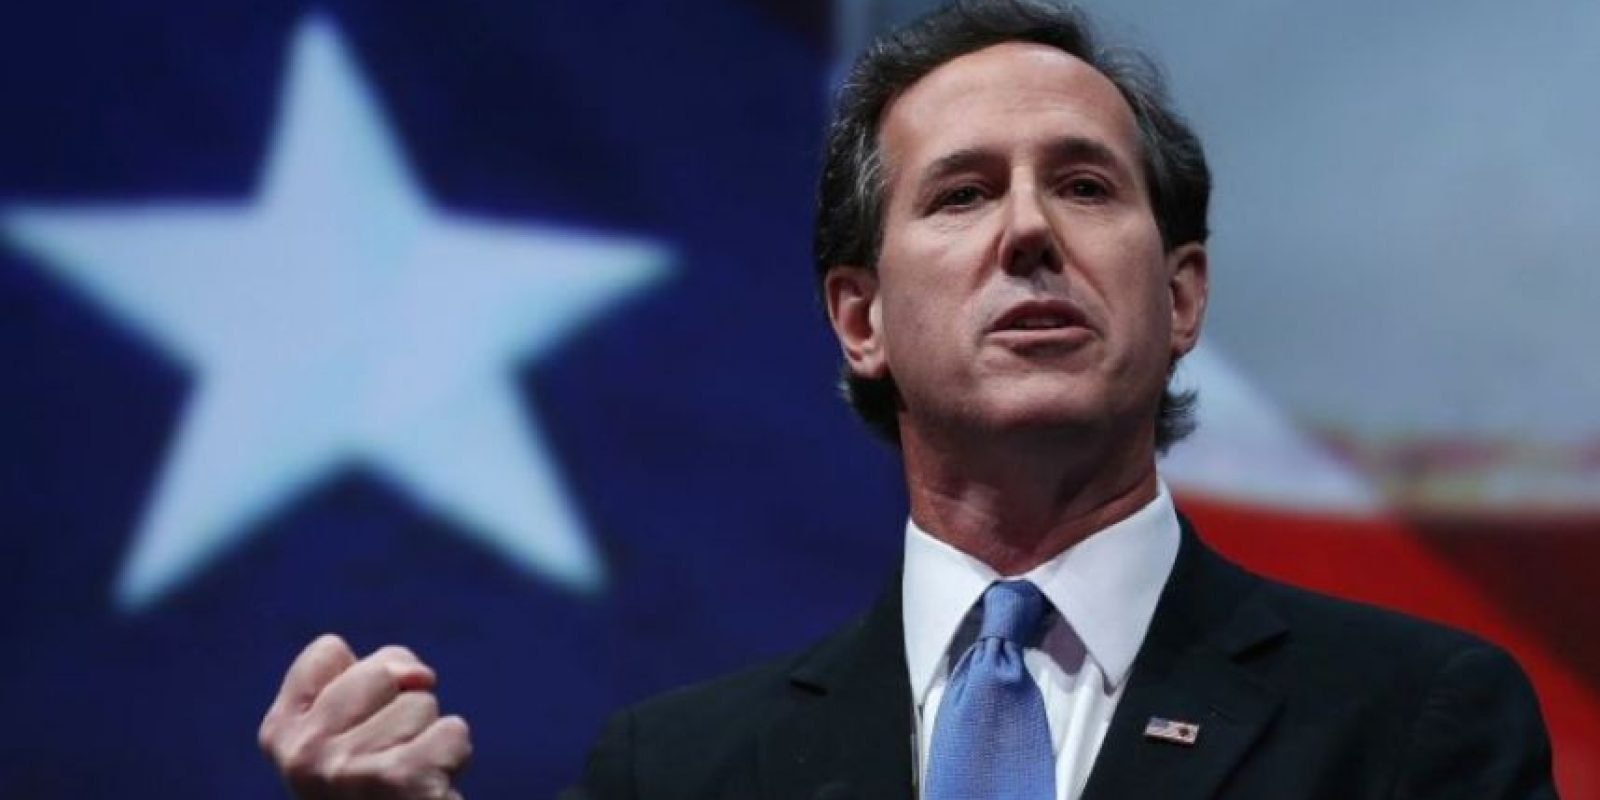 Rick Santorum Foto: Getty Images